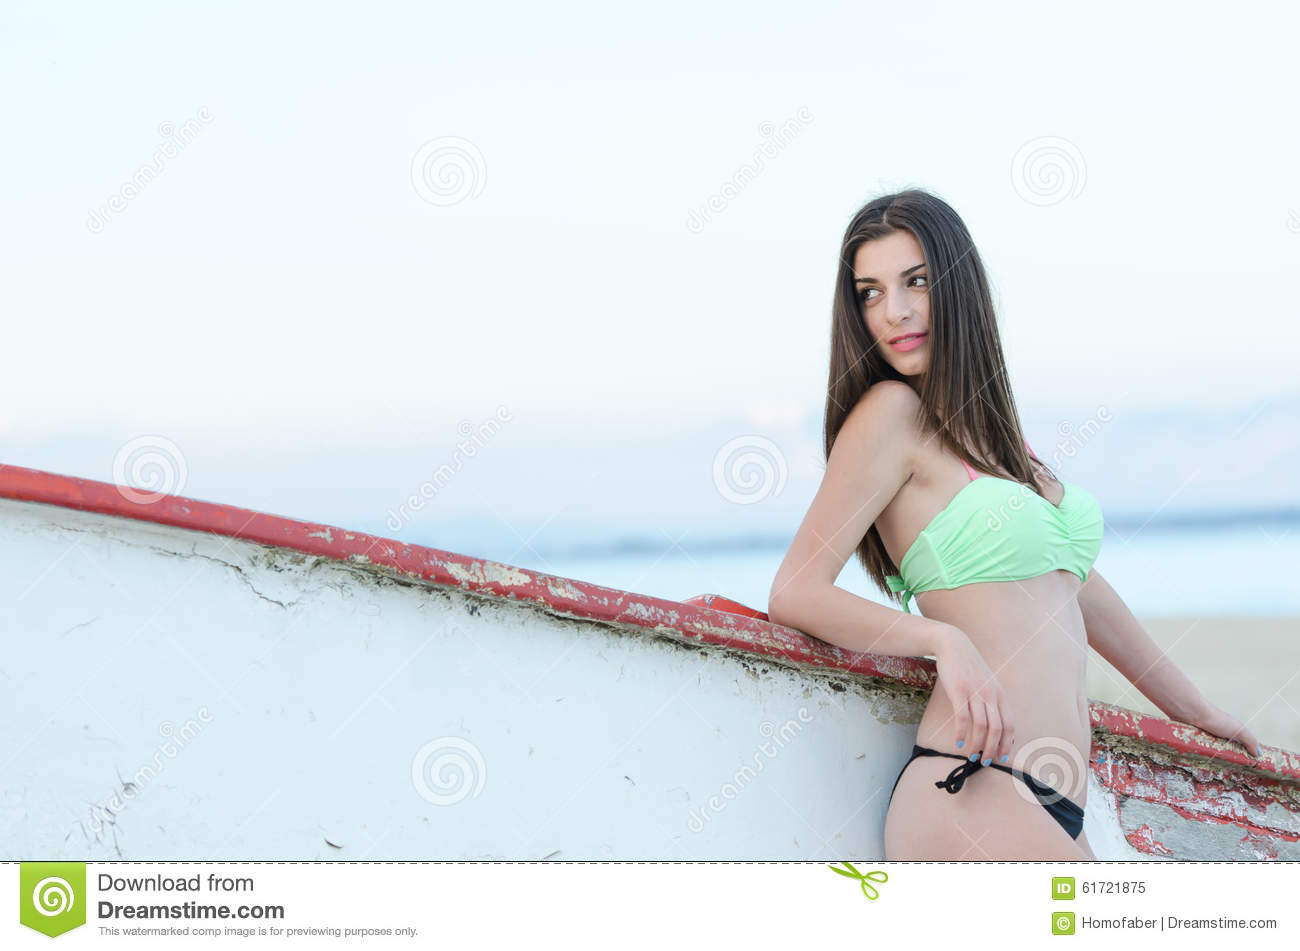 Slim Woman In Swimsuit Leaning On A Wooden Boat Stock Photo - Image: 61721875